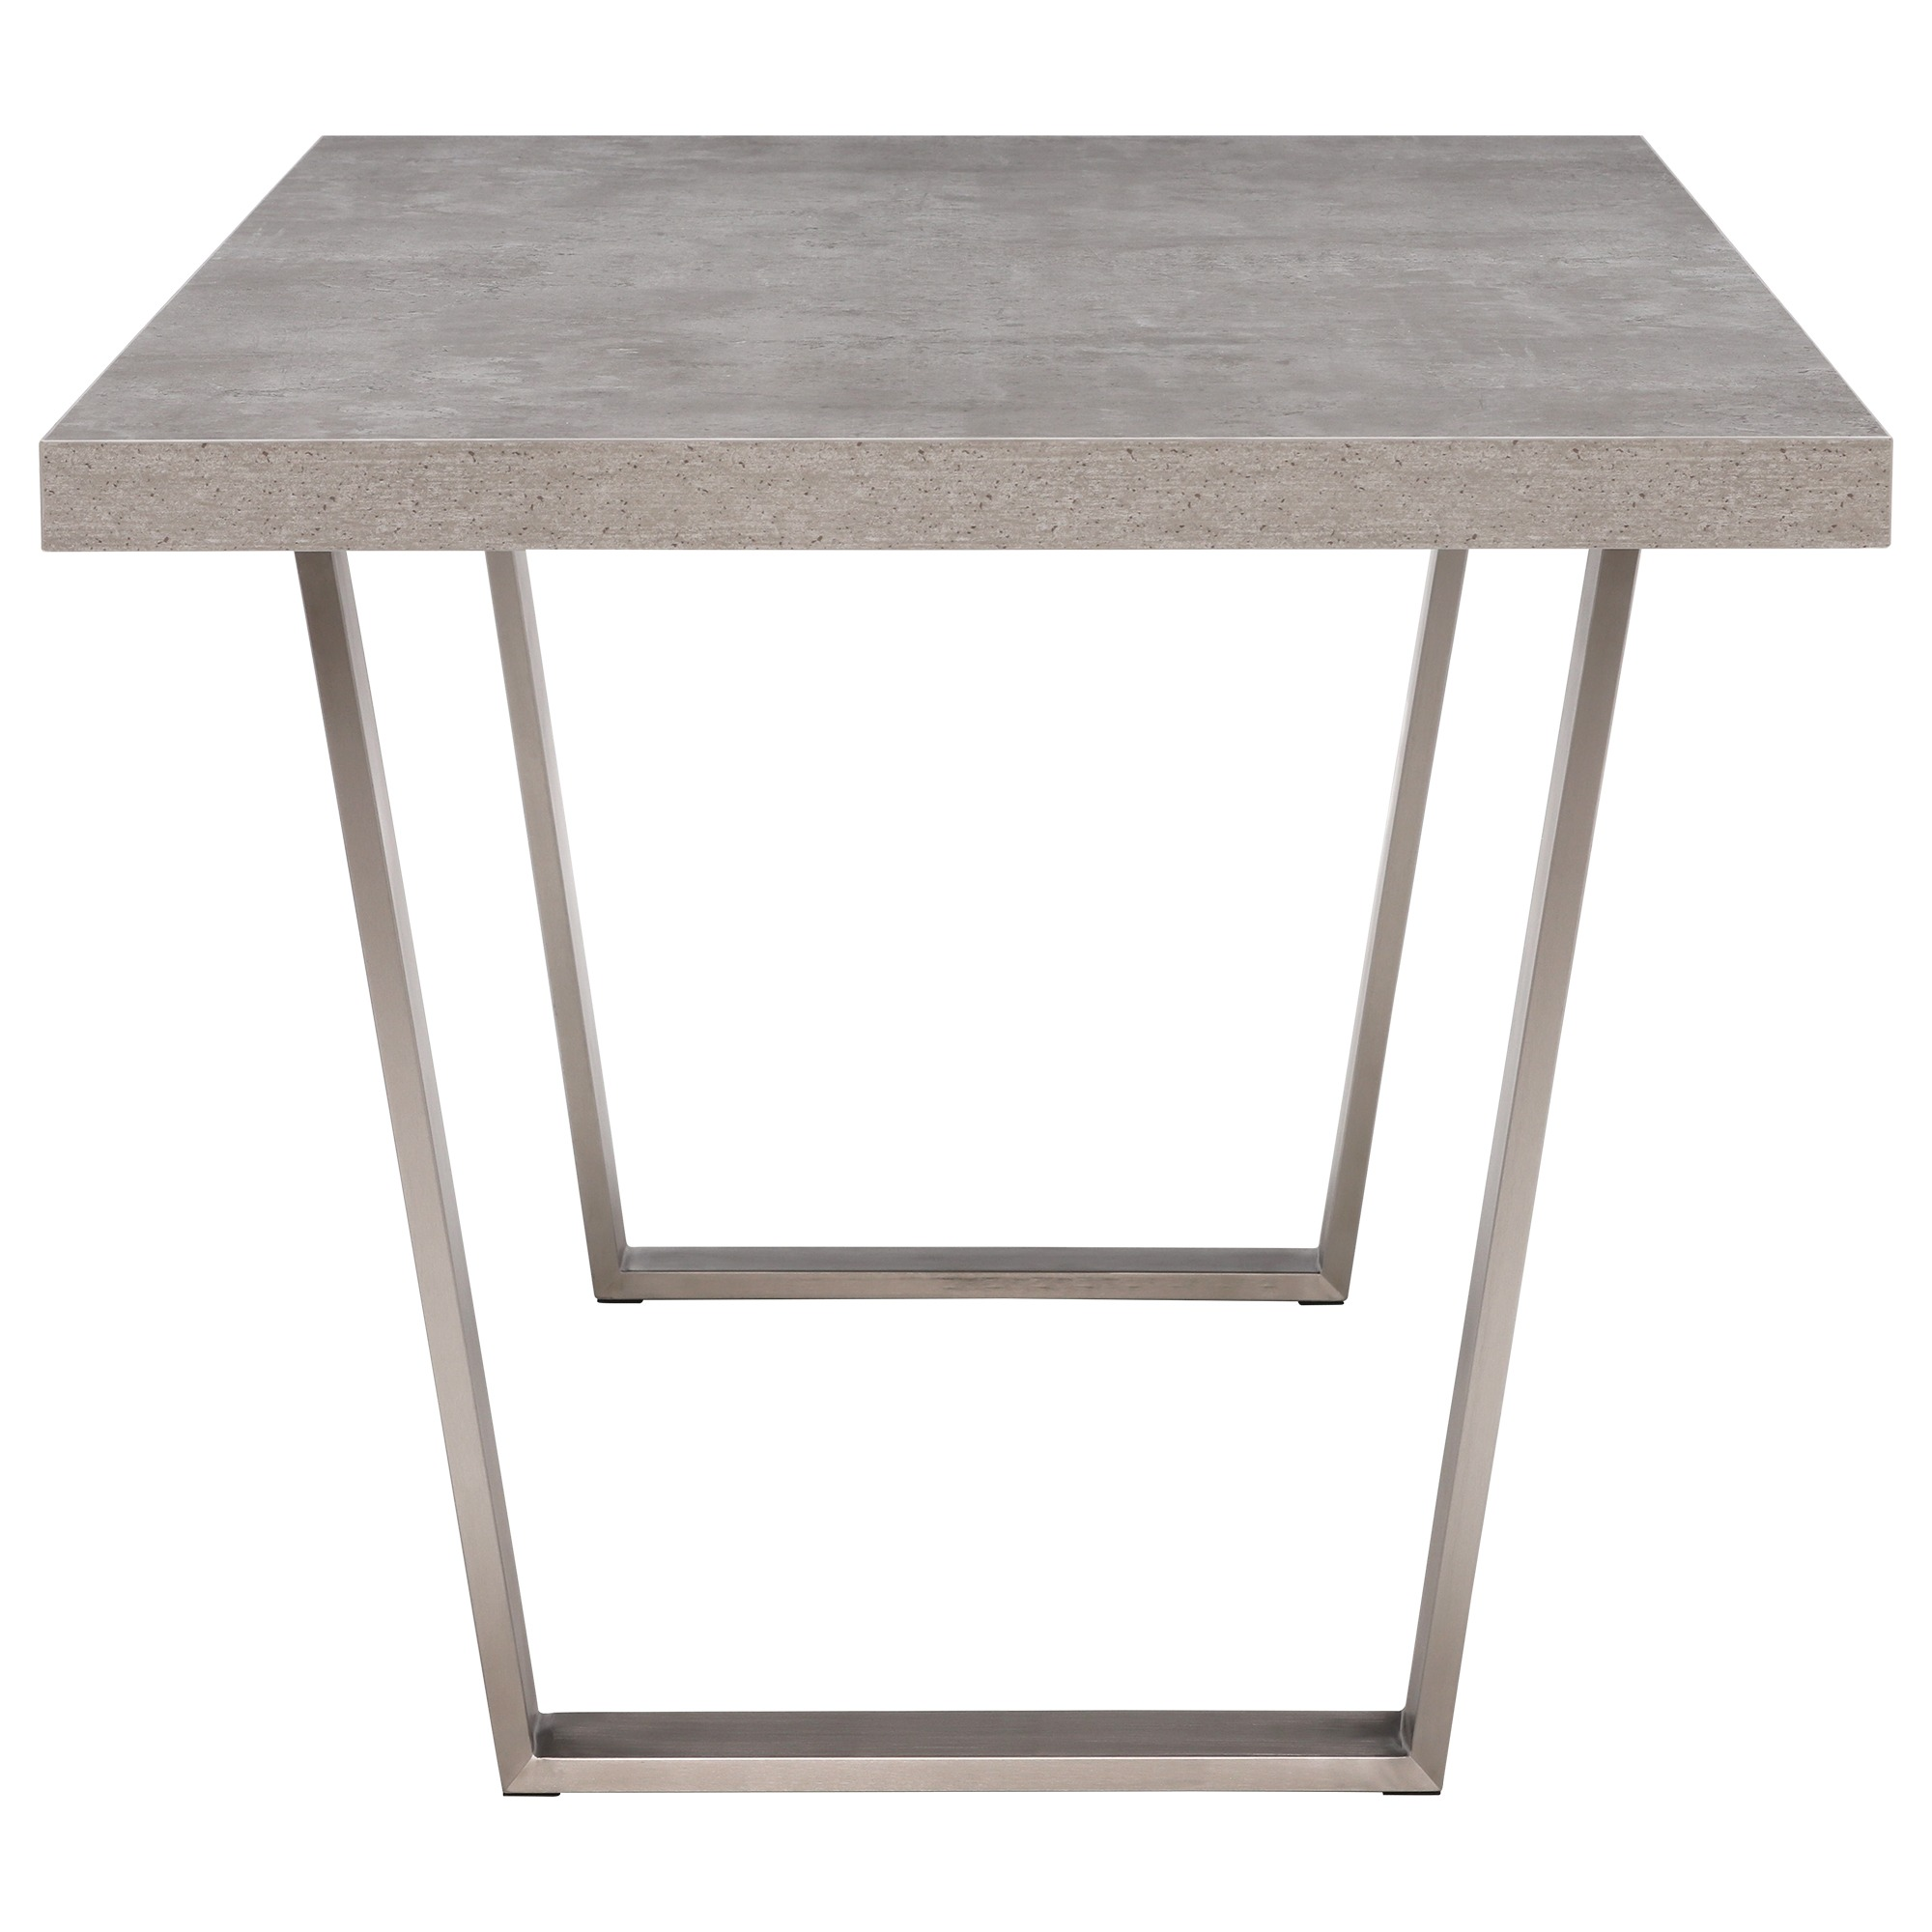 CONCRETE LOOK DINING TABLE - SIDE VIEW